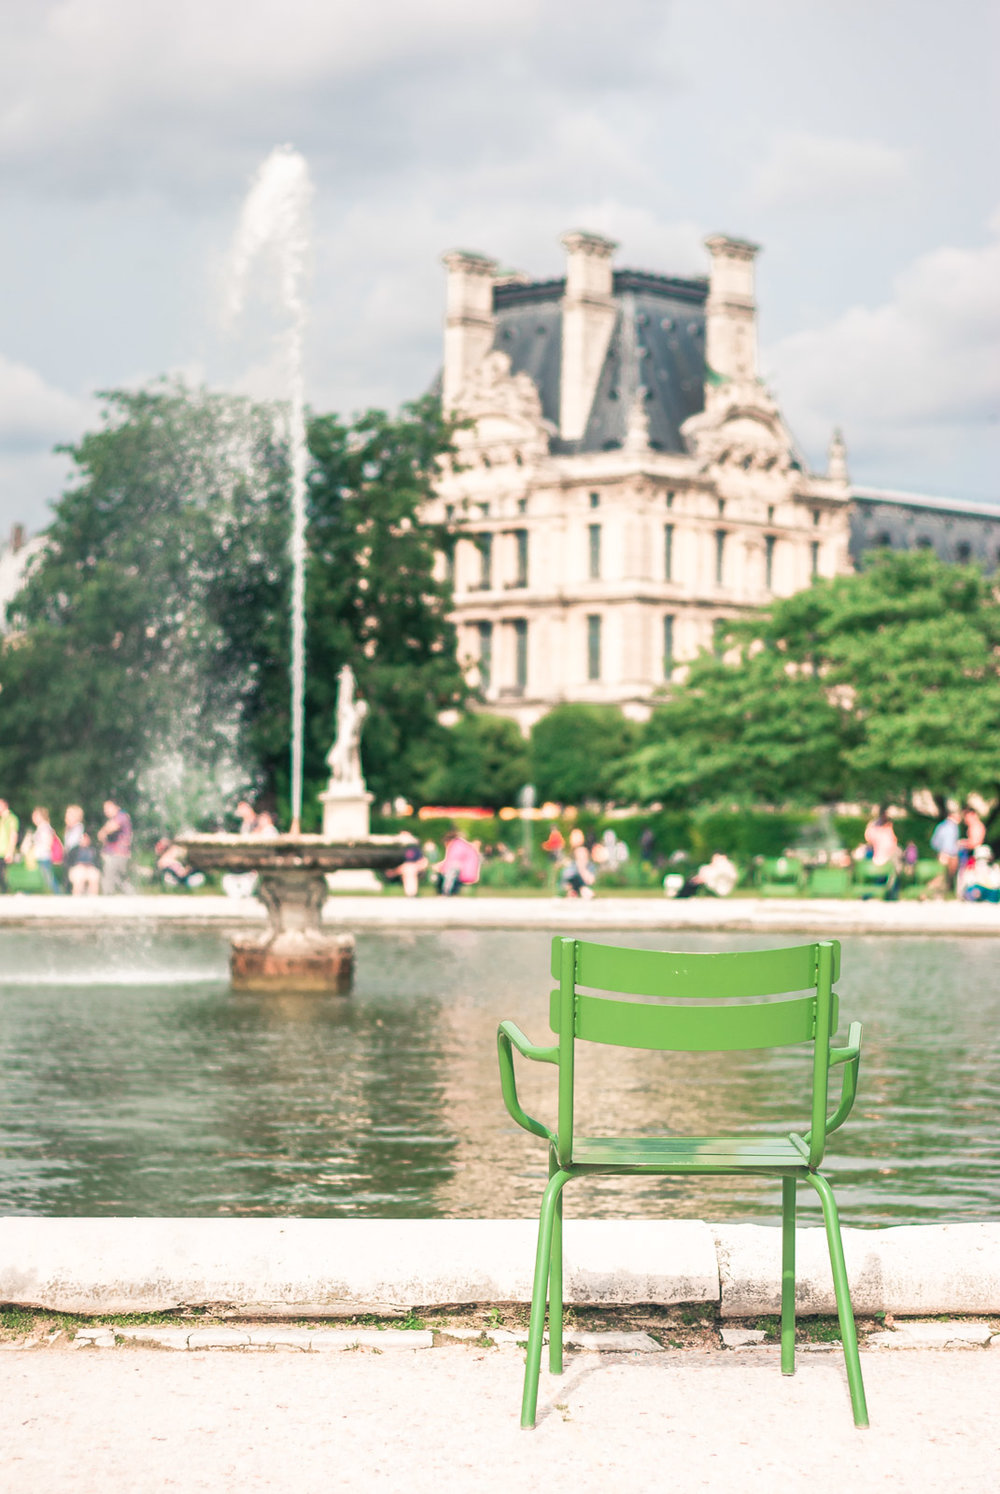 3_Paris-France-trip_Joseph-Barber-Photography.jpg